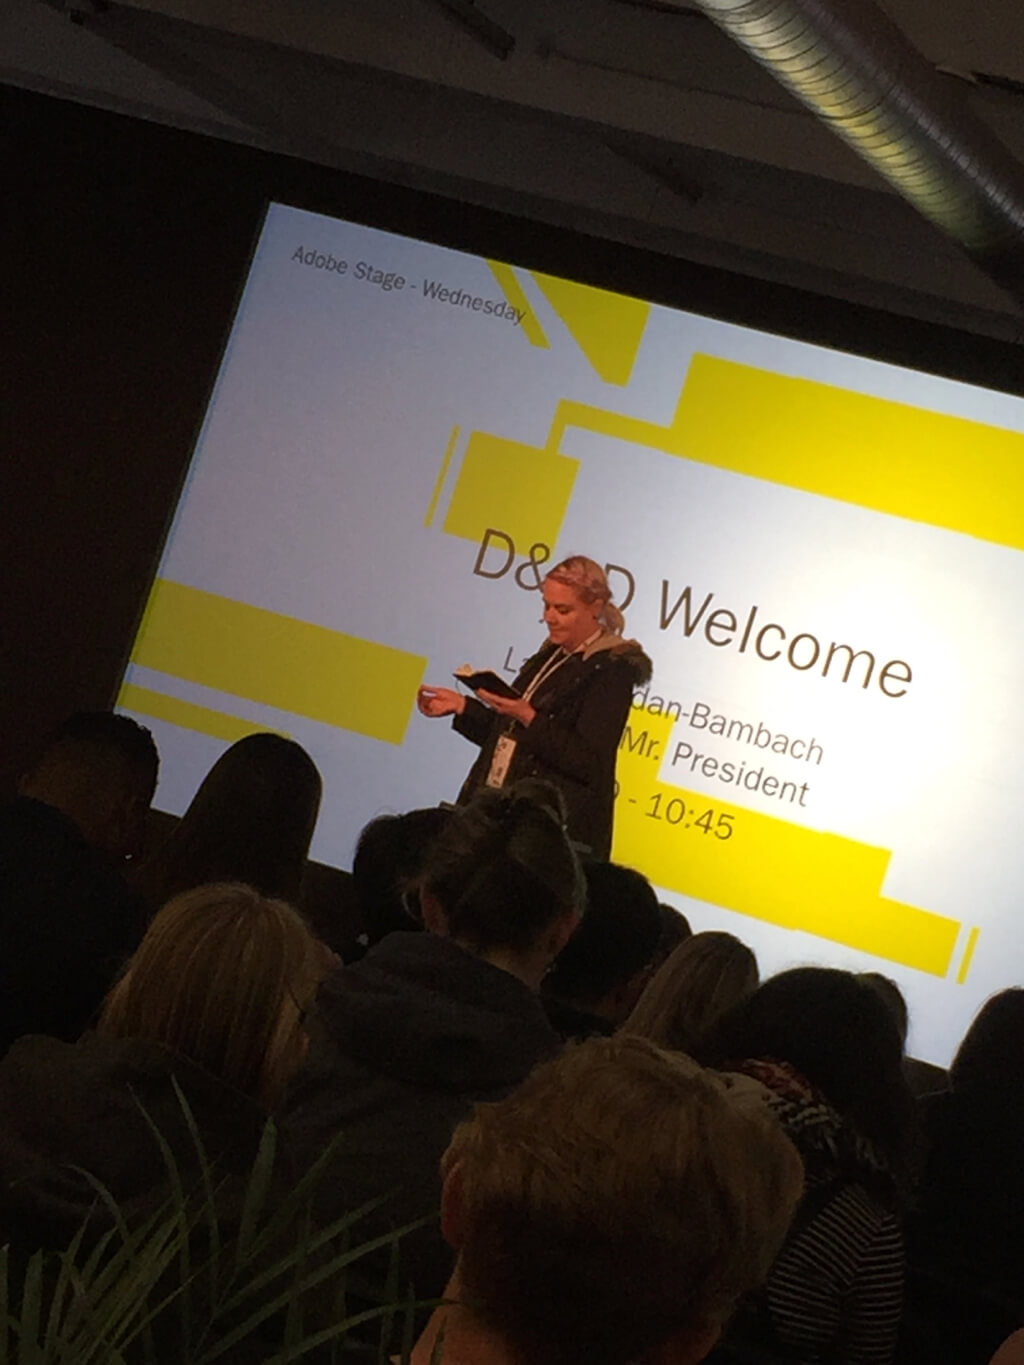 Welcome to D&AD 2017 by Laura Jordan Bambach